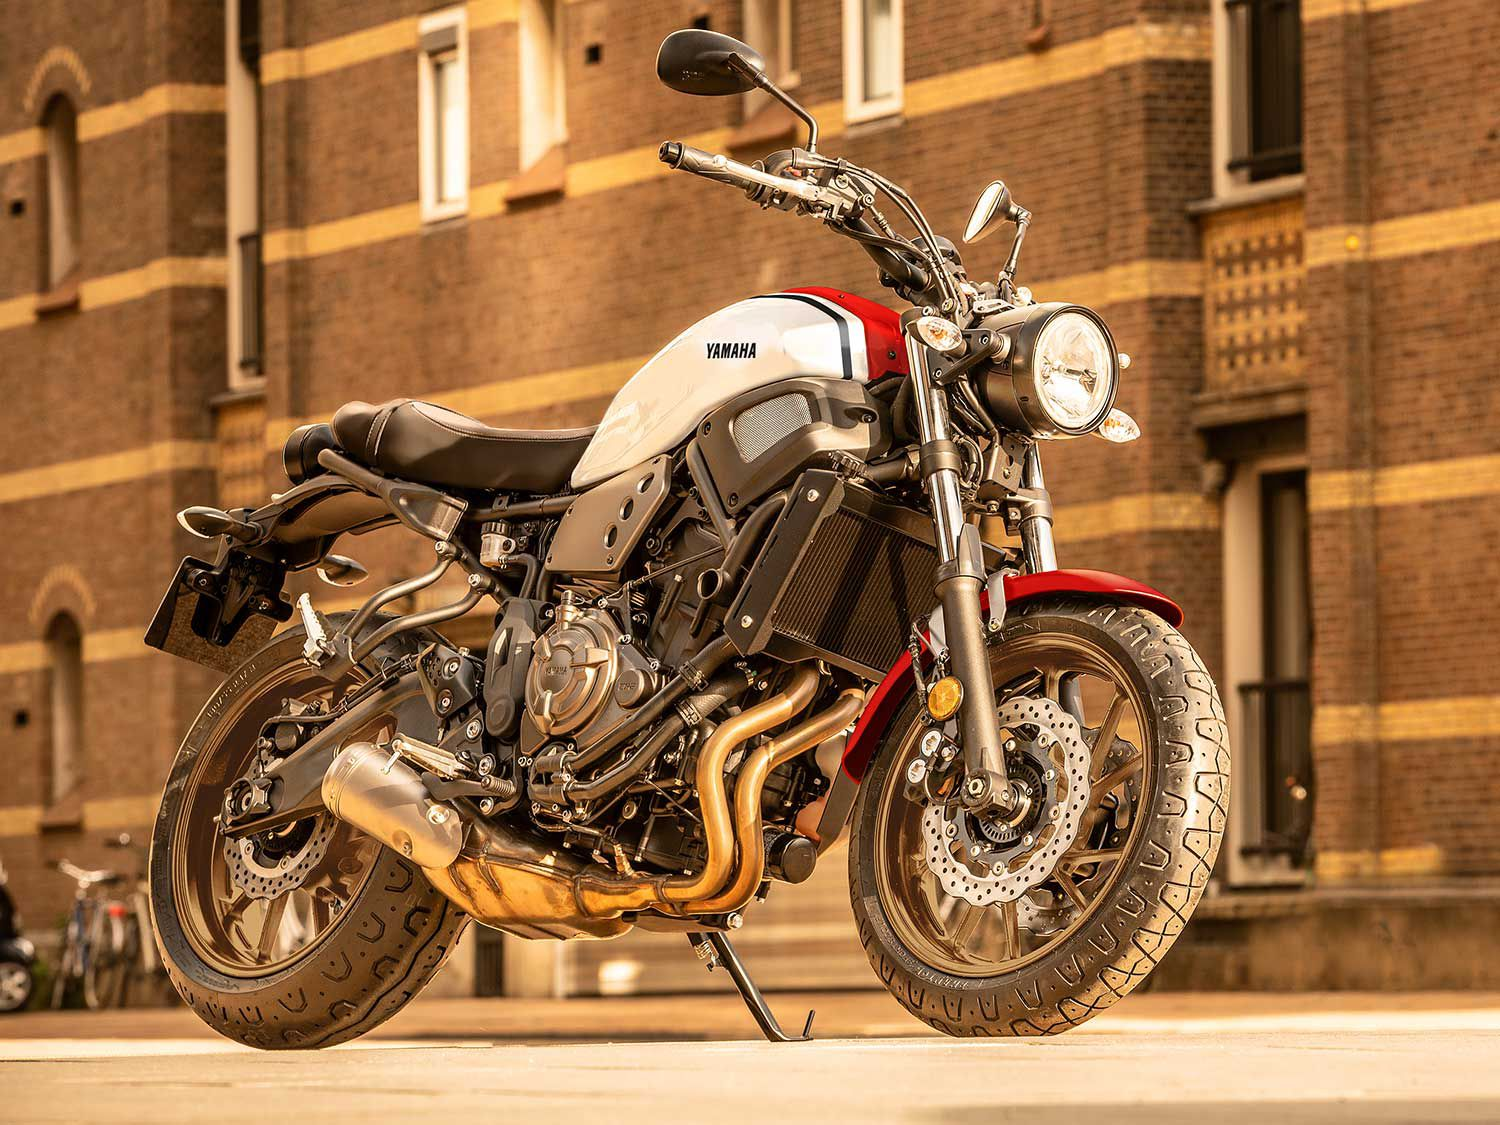 The 2020 Yamaha XSR700 recalls the character of the classic XS model Yamahas but packs all the tech today's riders want.